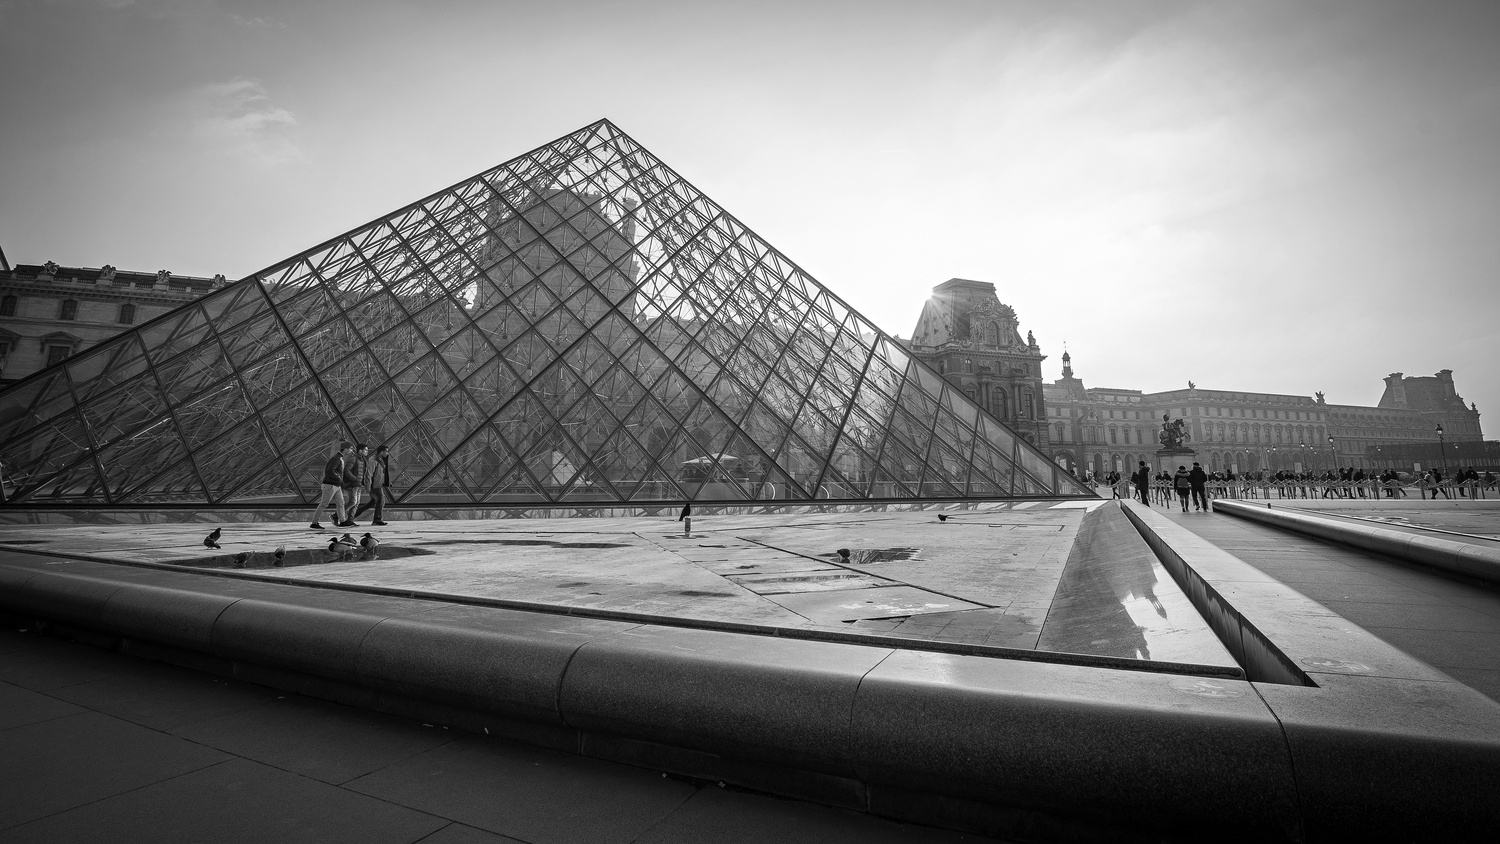 Shapes at the Louvre by Daniel Lightfoot